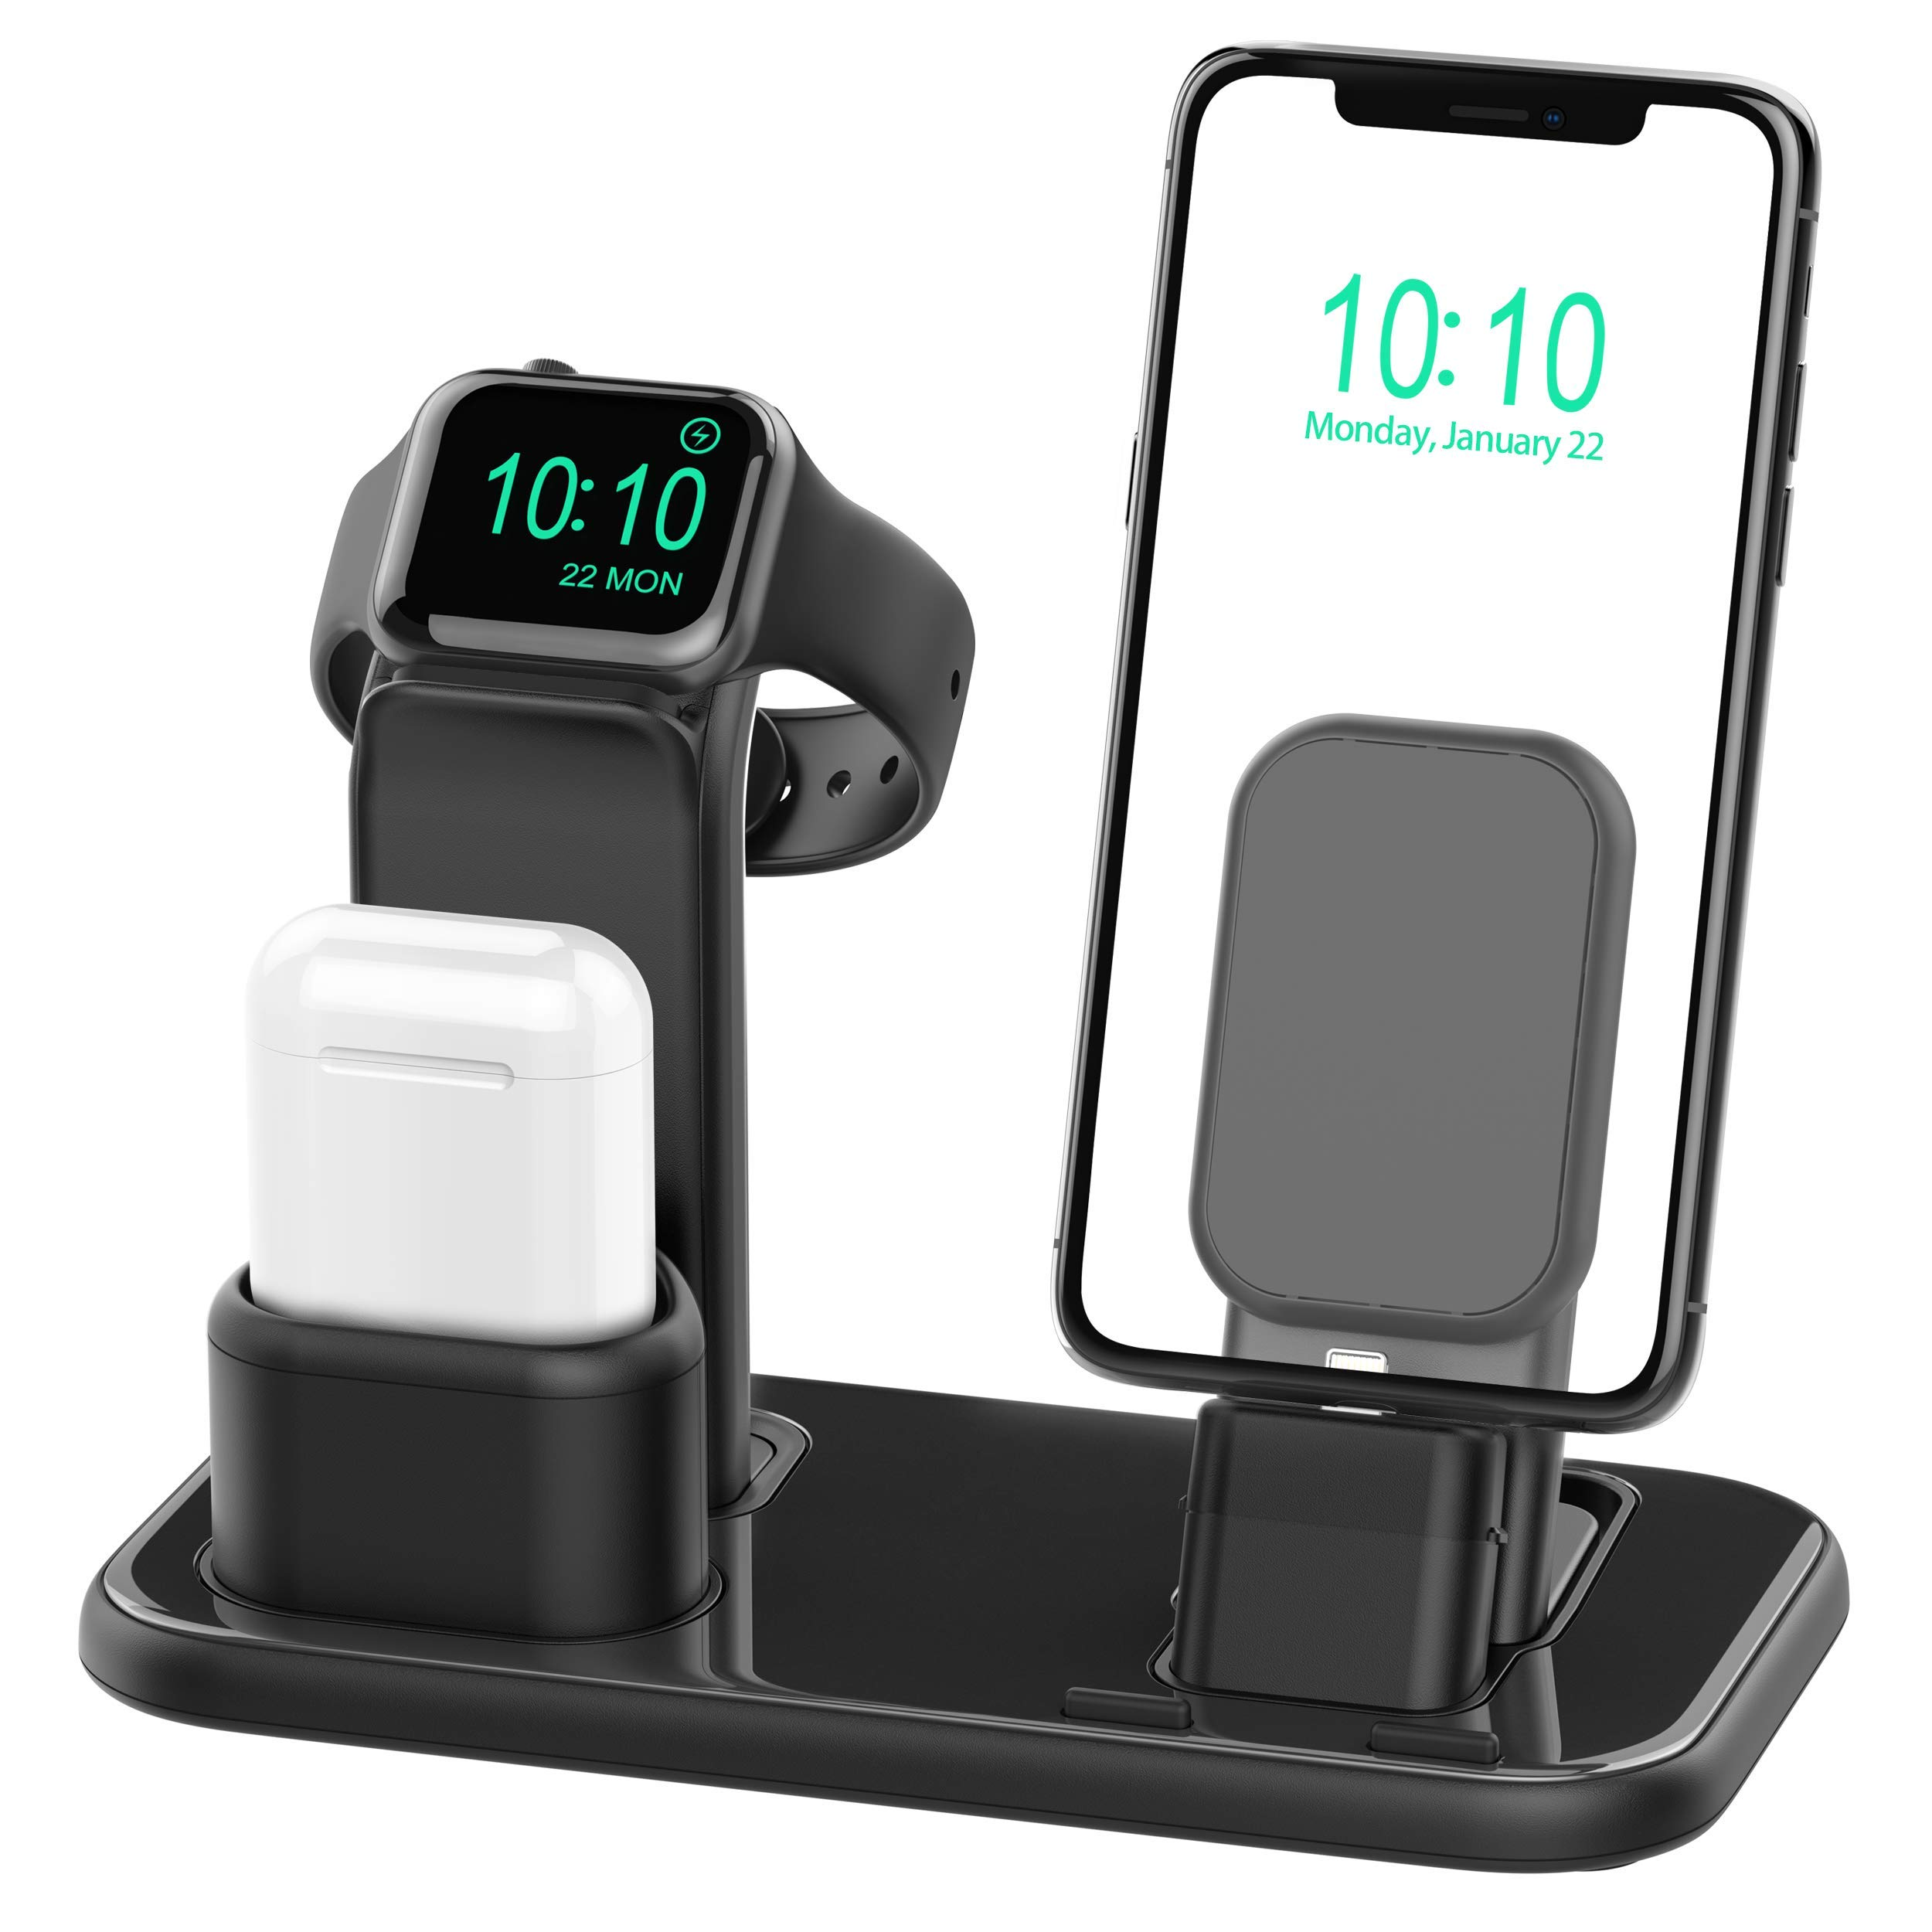 Beacoo Upgraded 3 in 1 Charging Stand for Apple Watch Series 4/3/2/1, AirPods Dock Charging Station for iPhone Xs/X Max/XR/X/8/8Plus/7/7 Plus /6S /6S Plus/iPad Mini(Original Charger & Cables Required)